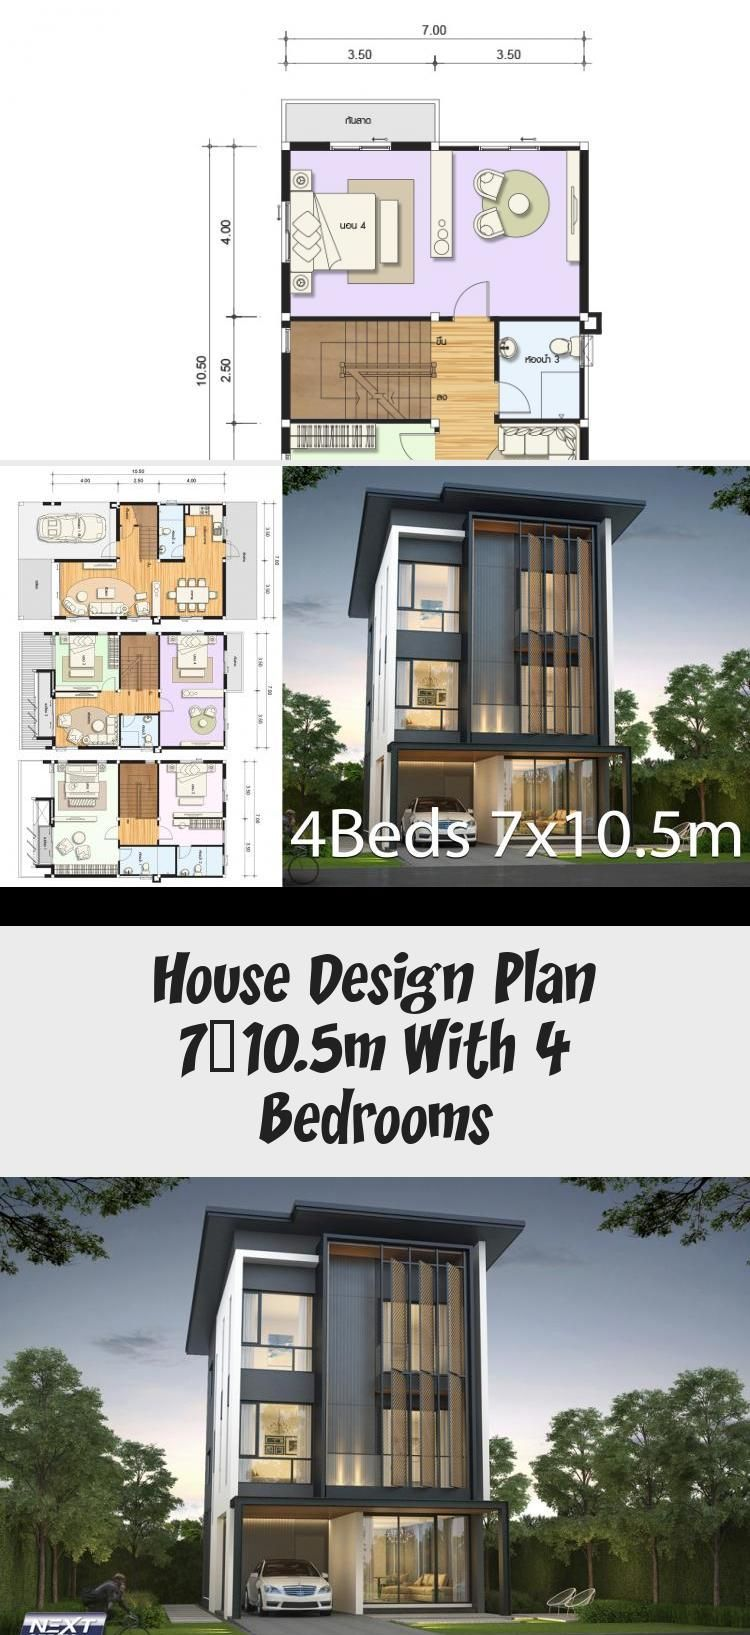 House Design Plan 7x10 5m With 4 Bedrooms Home Design With Plansearch Littlehousedesign Industrialhouse In 2020 Home Design Plans House Design Classic House Design